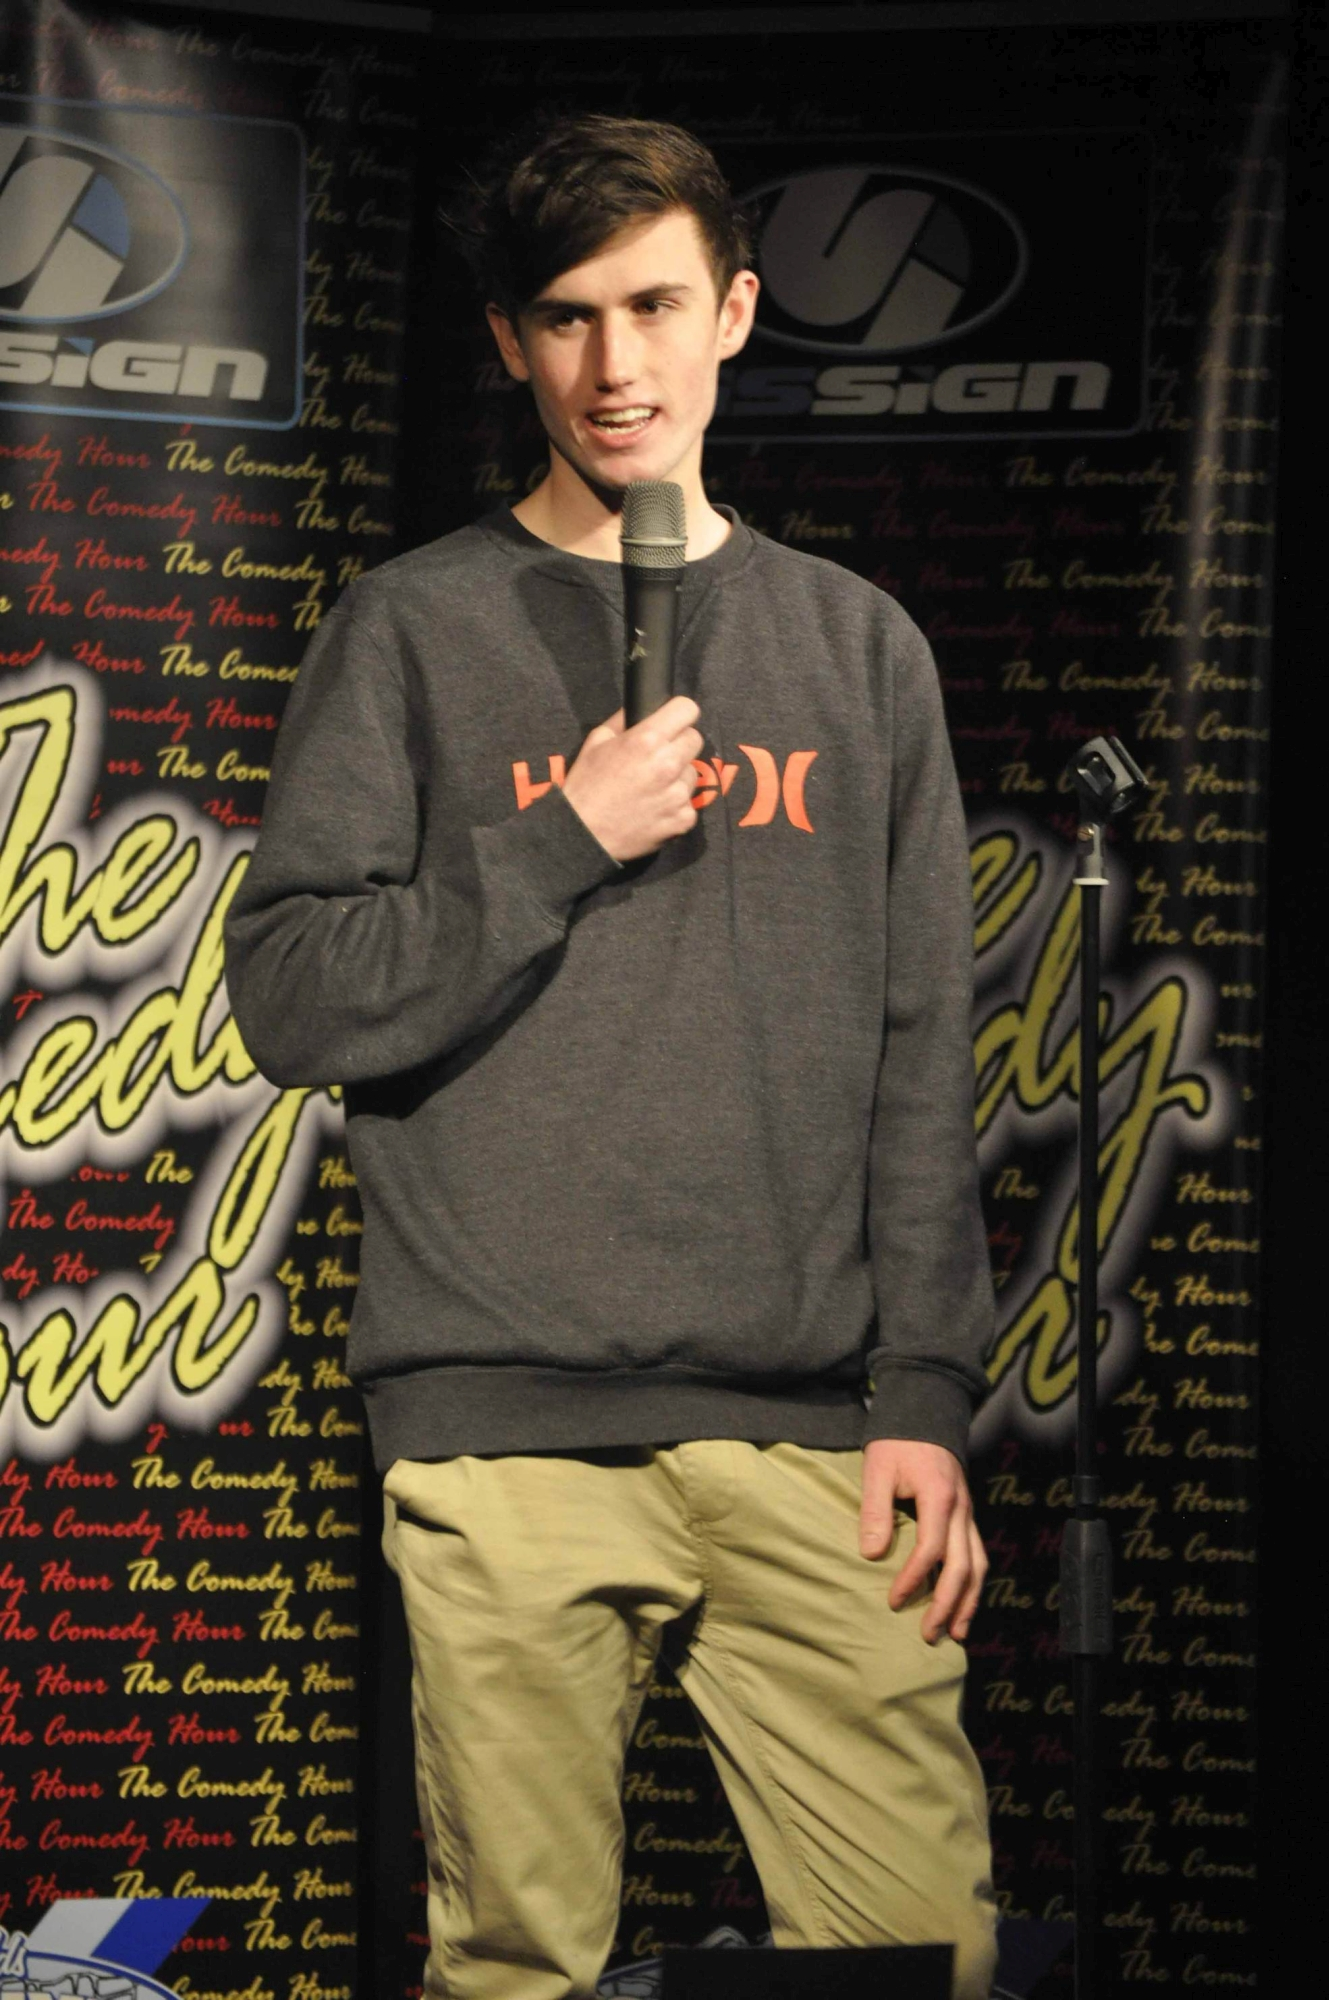 Teen comedian on the rise